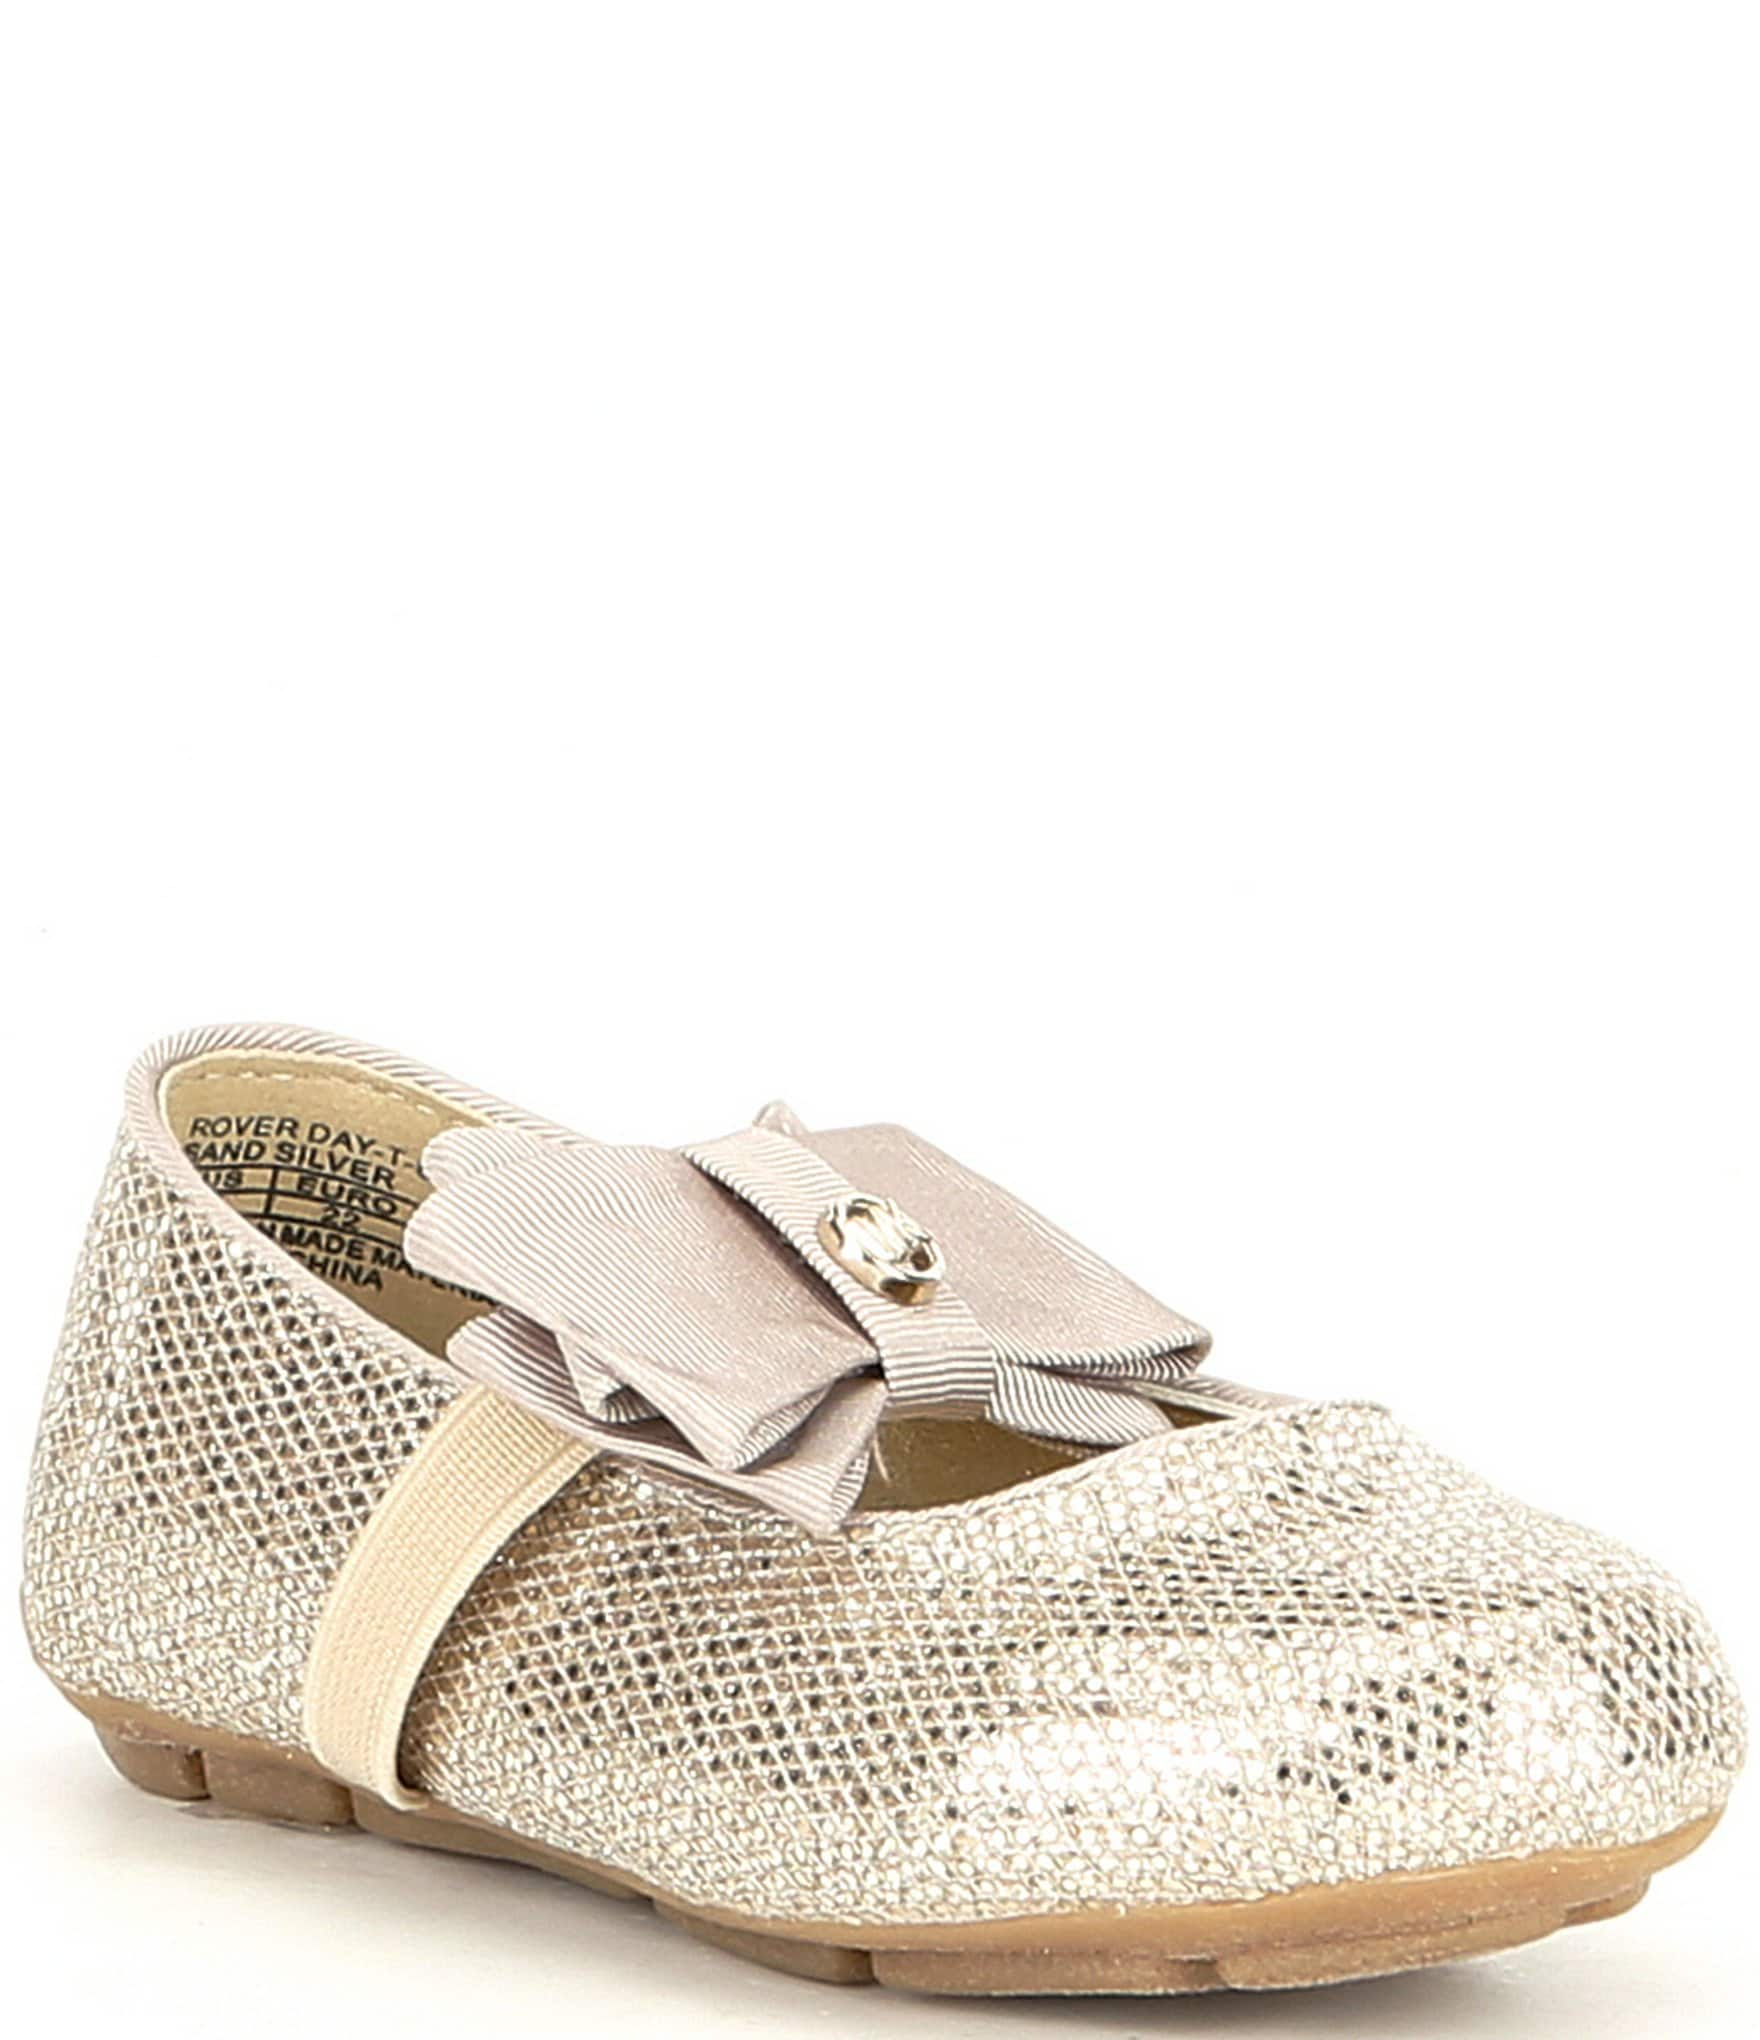 09c278ef8dd5d8 MICHAEL Michael Kors Youth Girls  Shoes